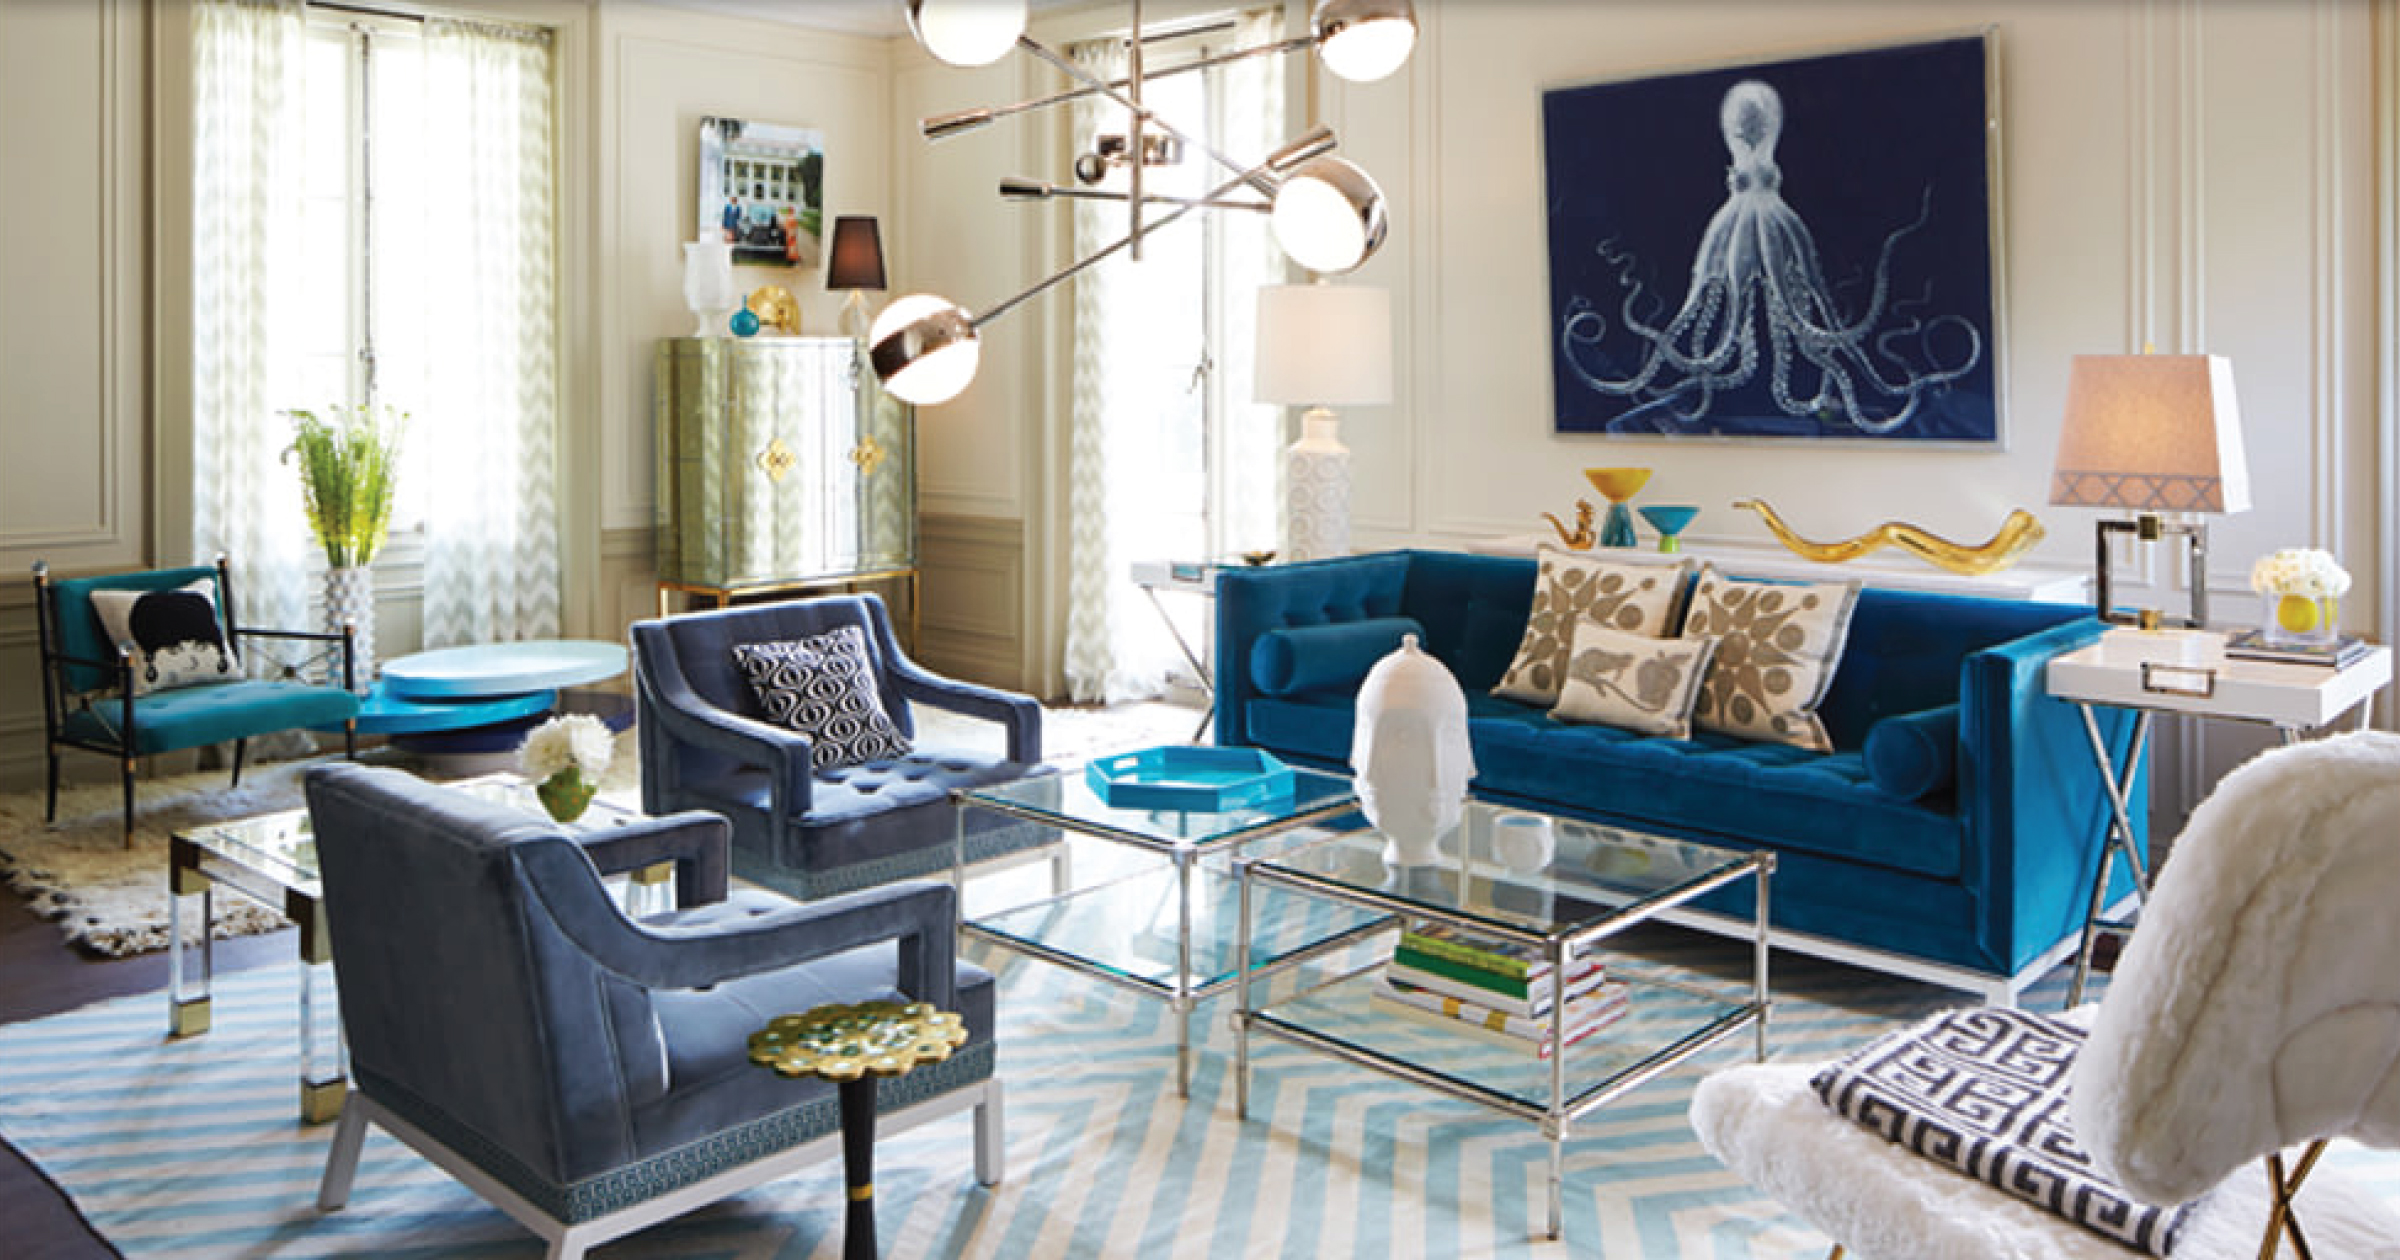 Elegant Saveemail 10 Beautiful Living Room Ideas By Interior Designers Real Vs  Steal A Gorgeous Jonathan Adler